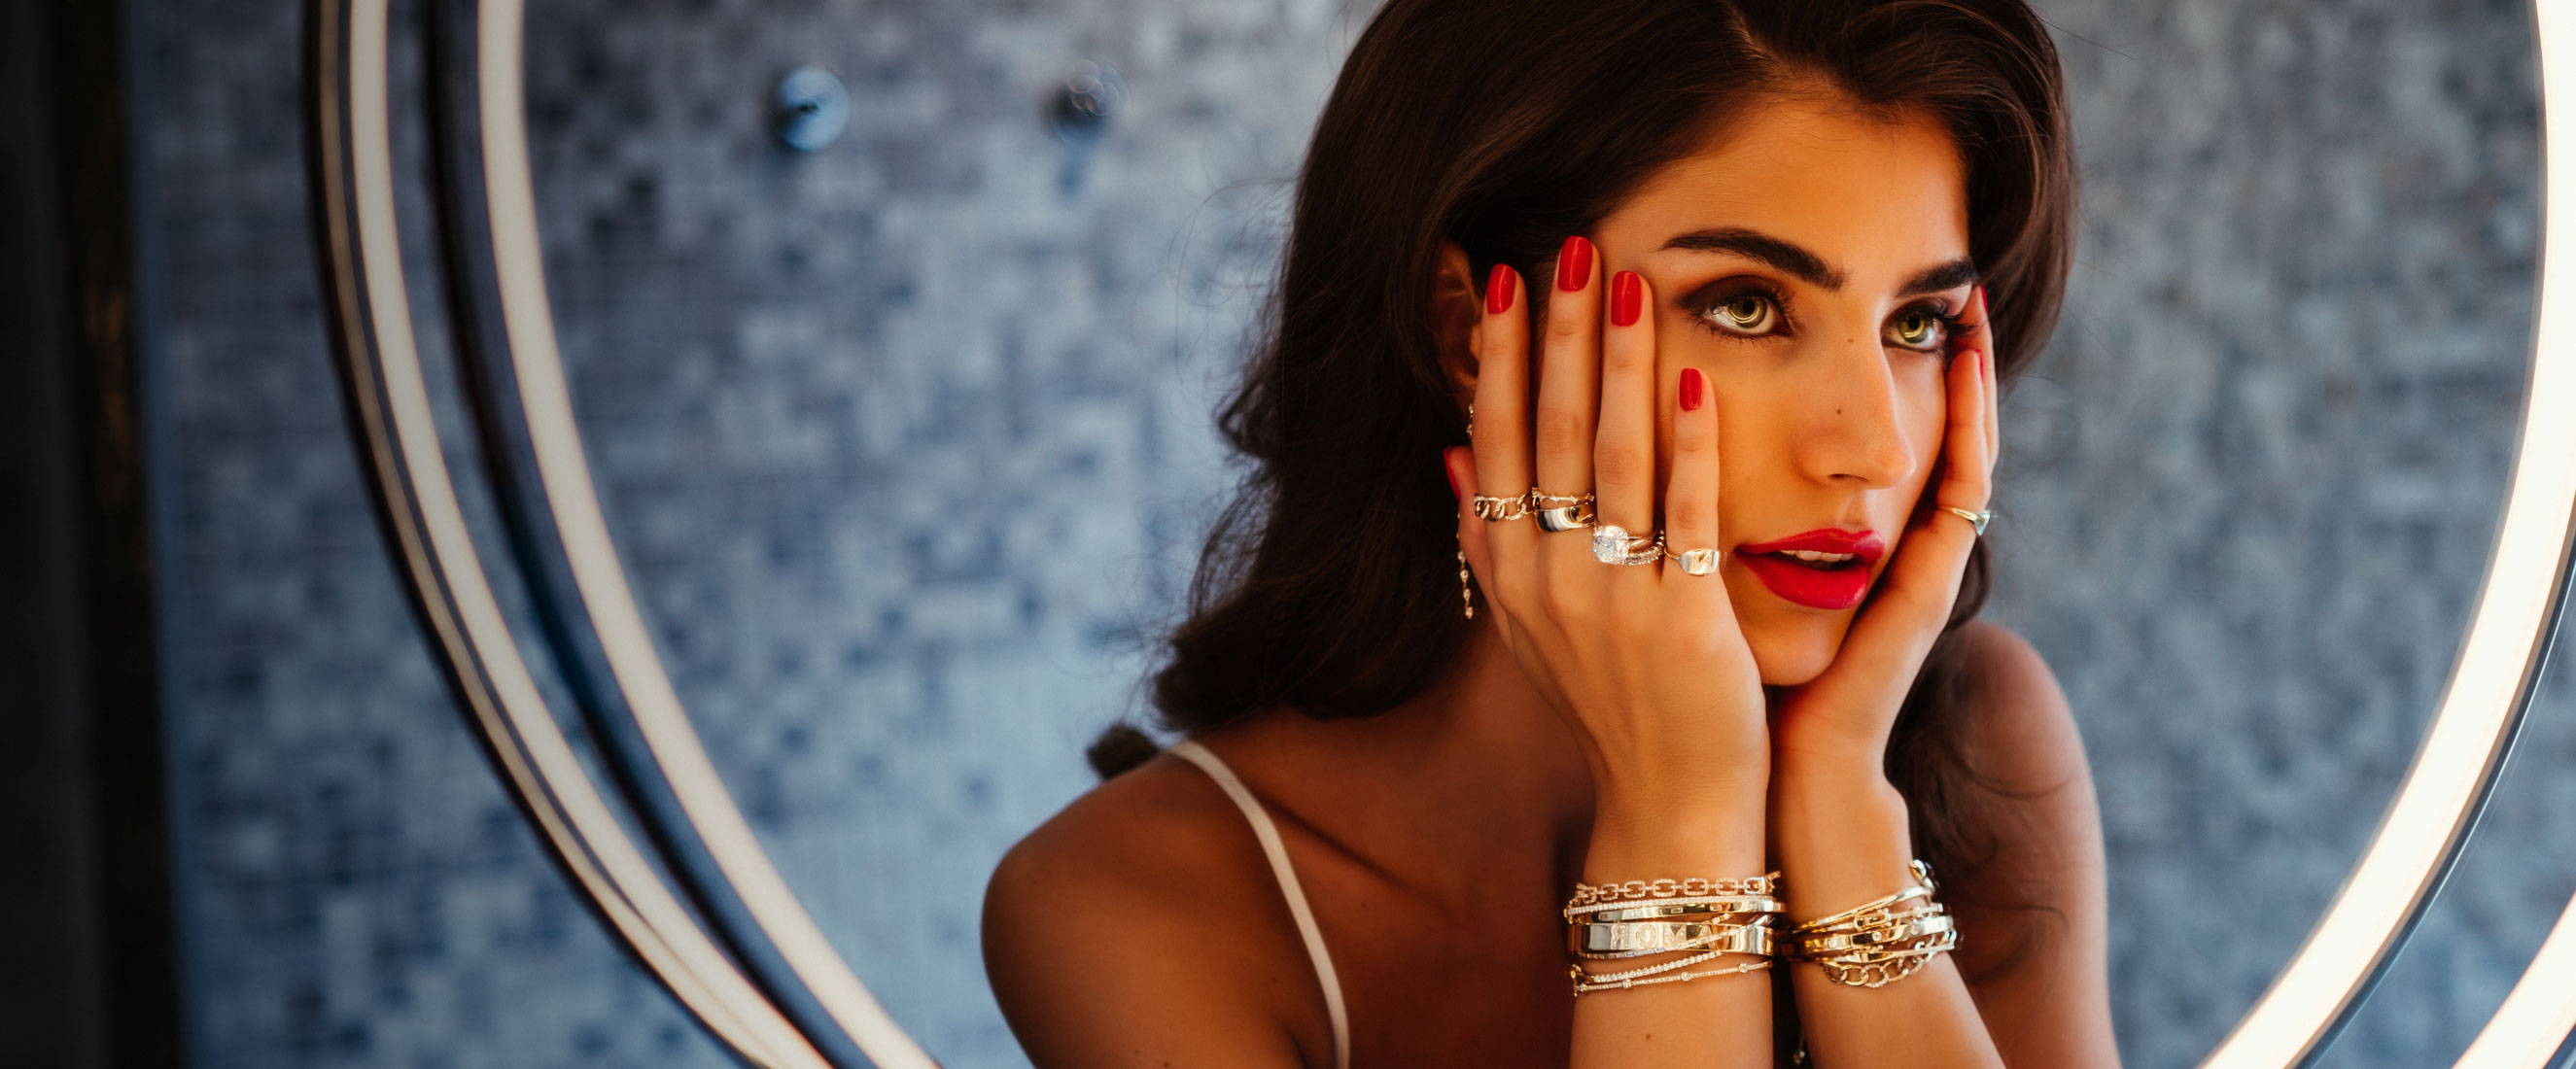 Model wearing Ring Concierge jewelry looking in the mirror